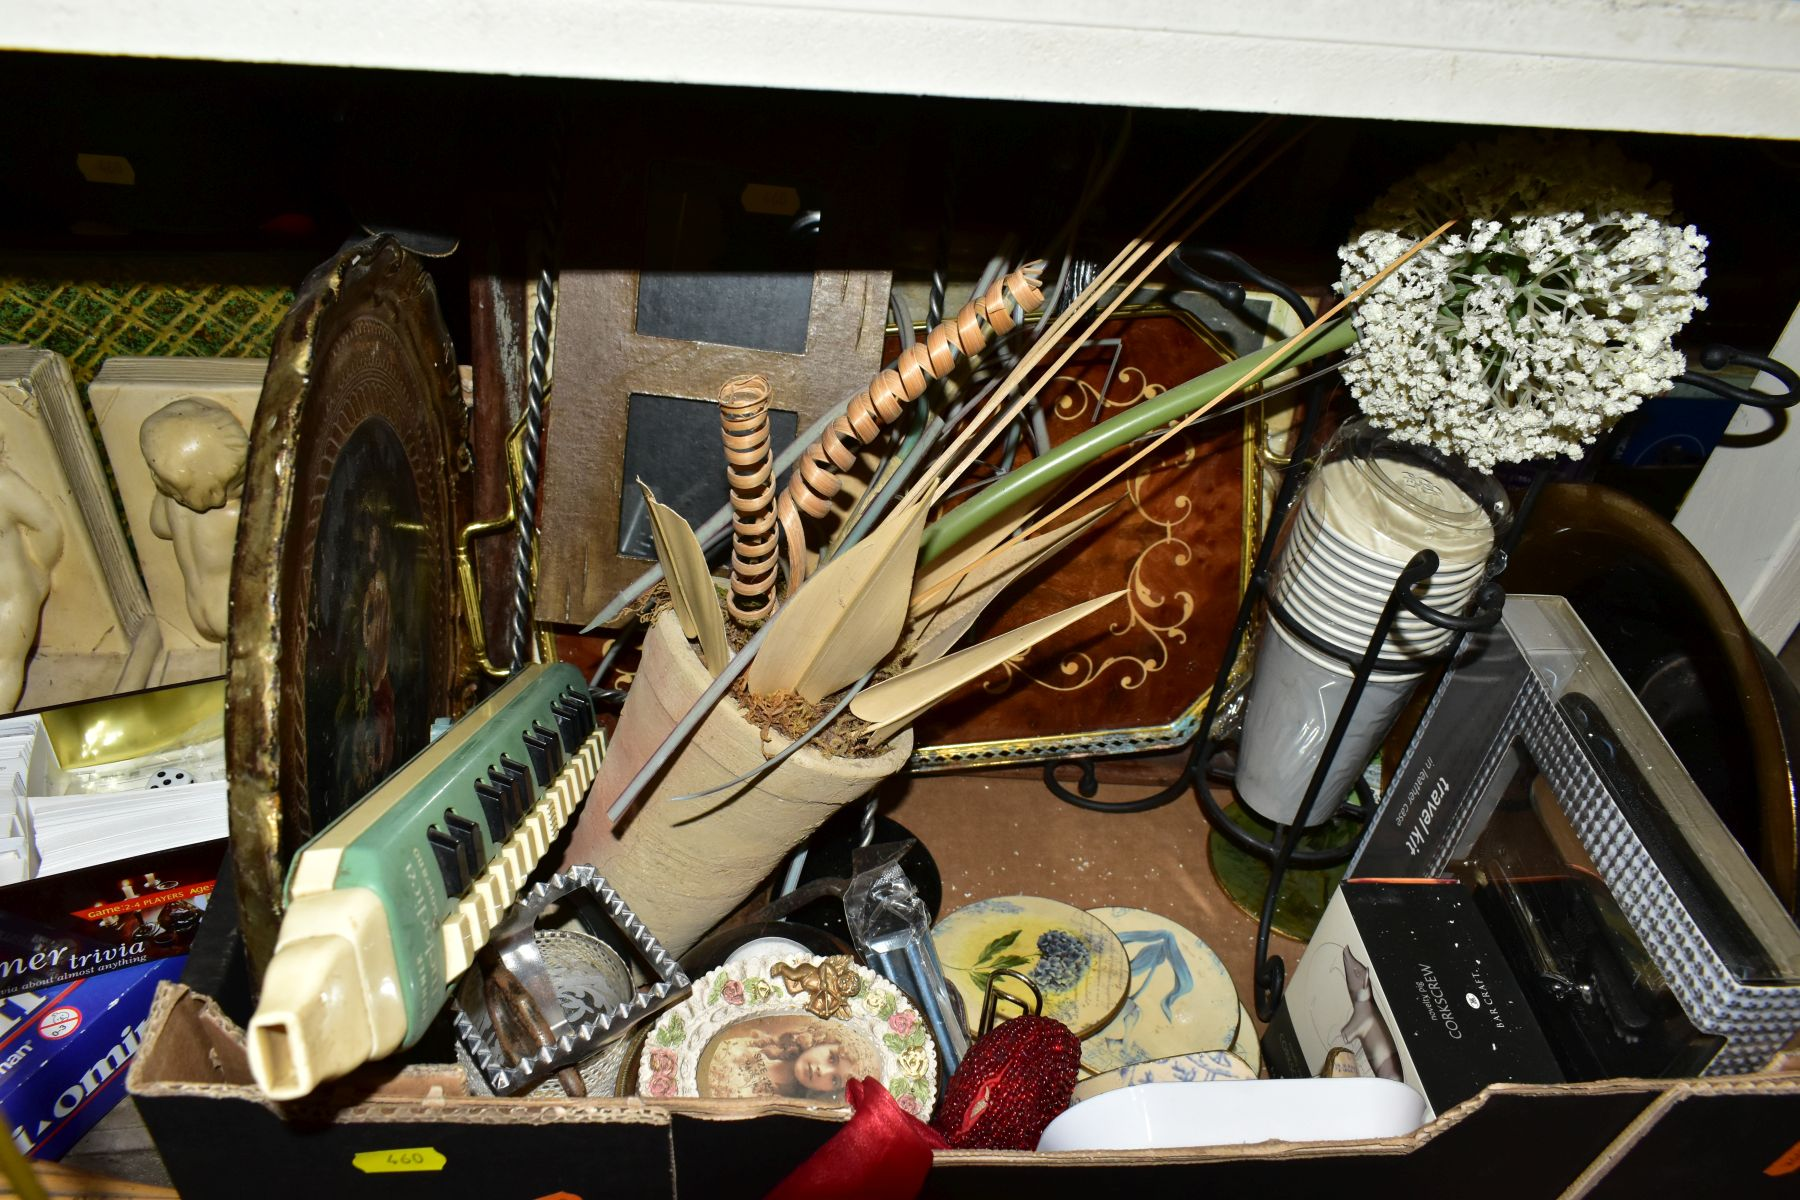 FOUR BOXES AND LOOSE METALWARE, HOUSEHOLD SUNDRIES, OIL LAMP, etc, to include board games, book - Image 9 of 16